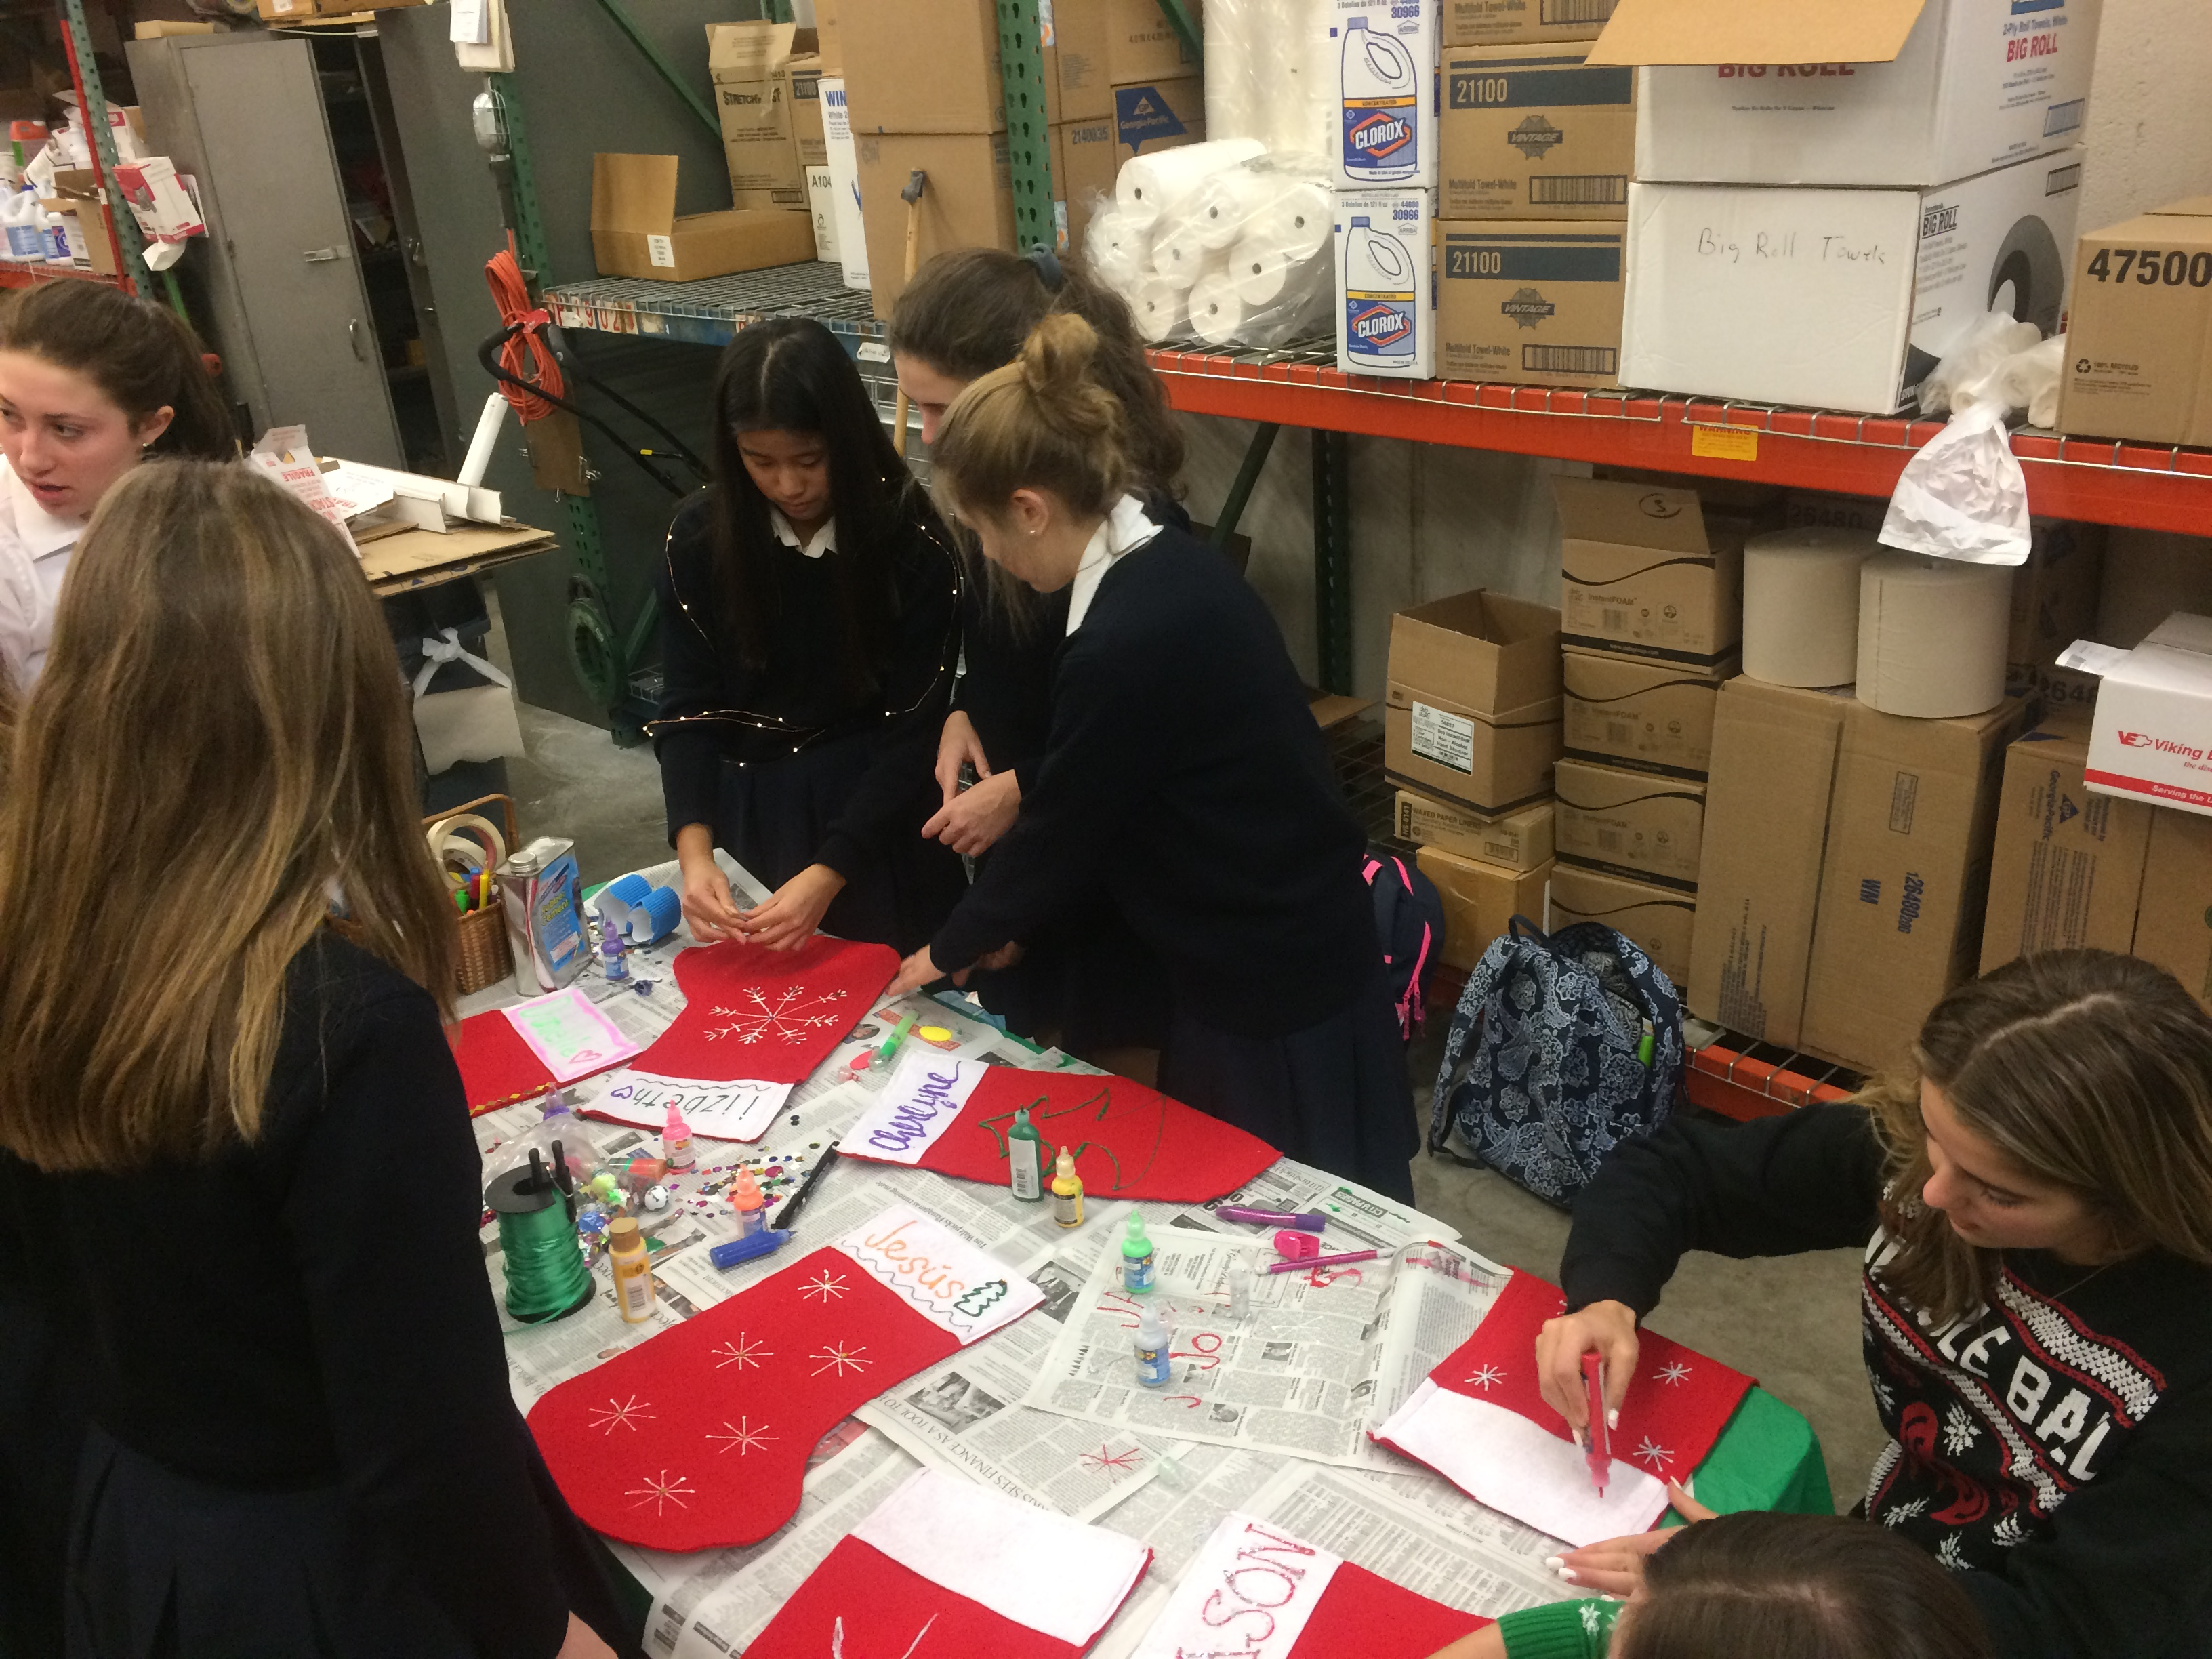 Students work on sewing Christmas stockings